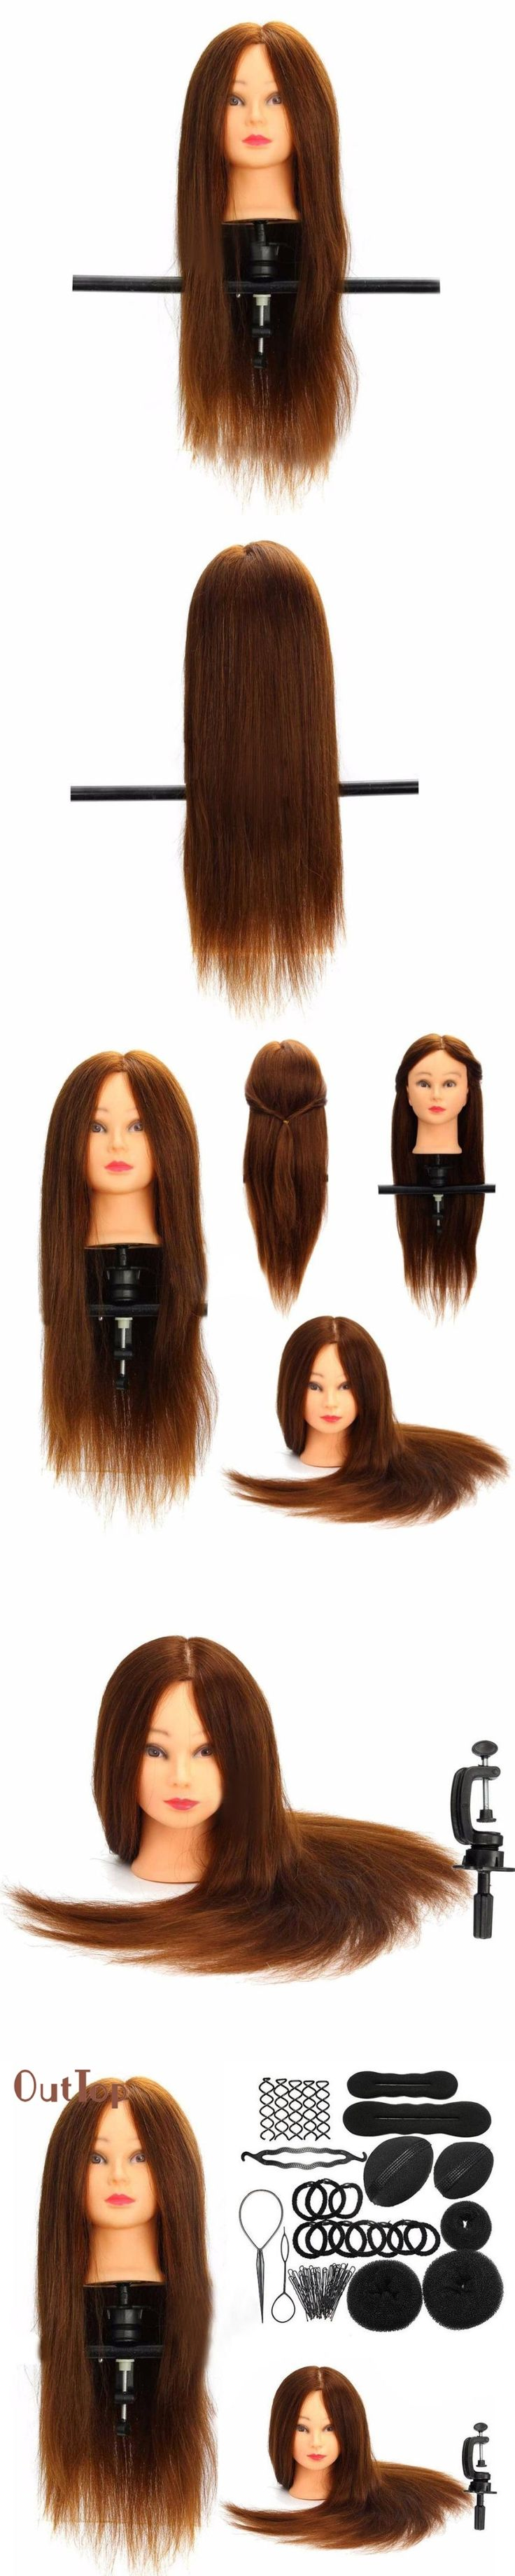 Beauty Girl Hot Fashion Hairdressing Training Model Practice Head + Braid Sets 11.21